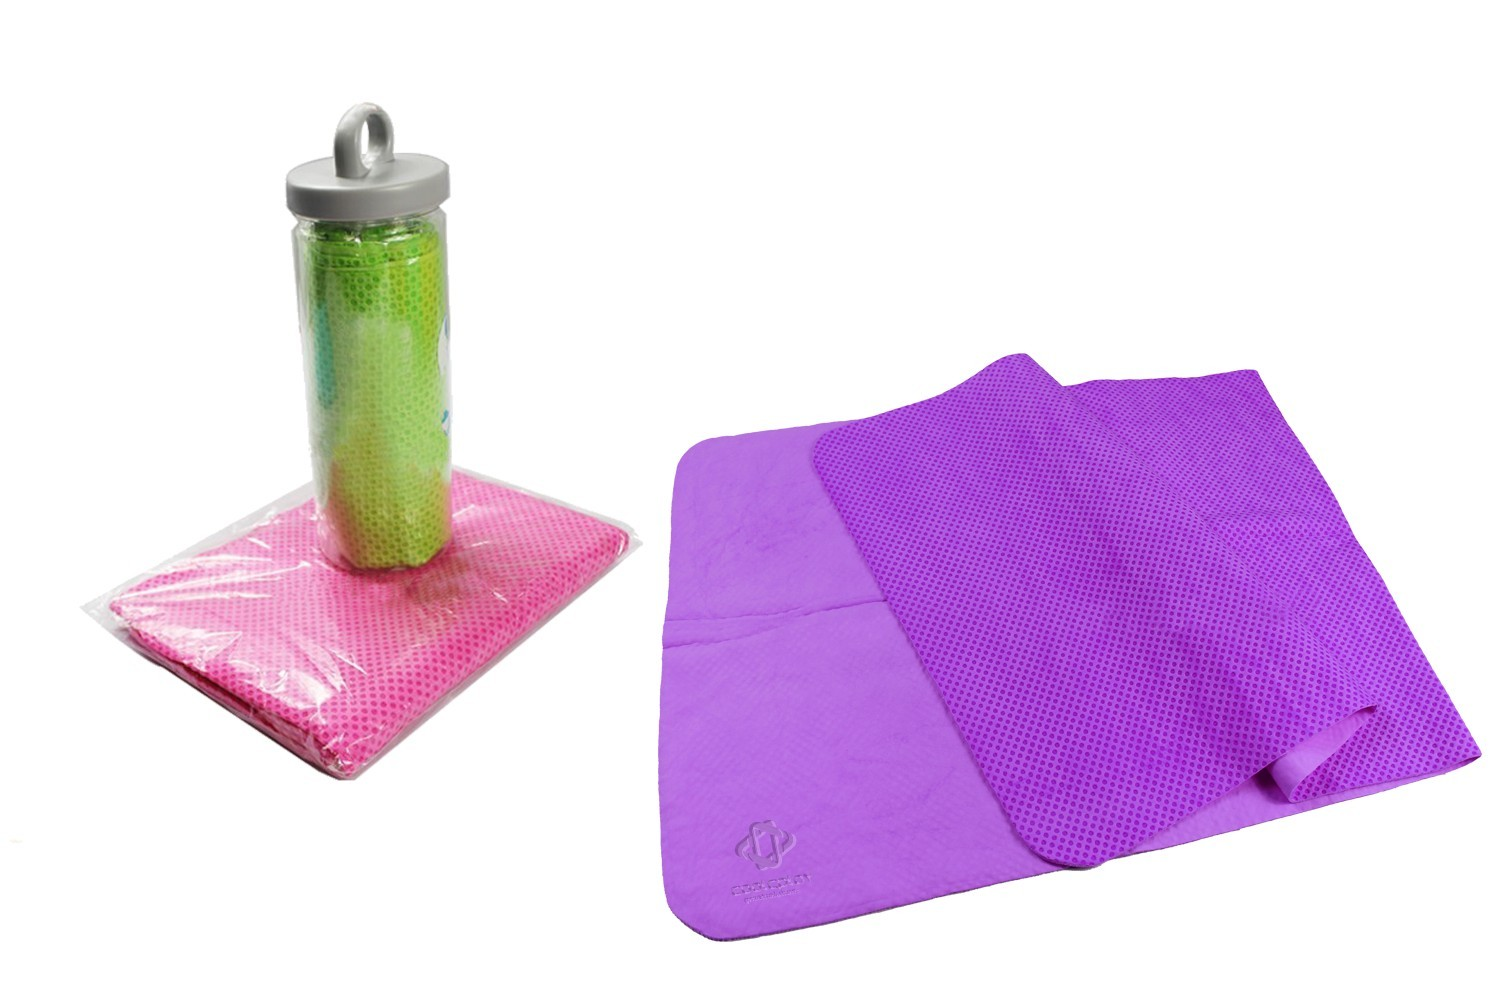 Textured Chill Ice Towel